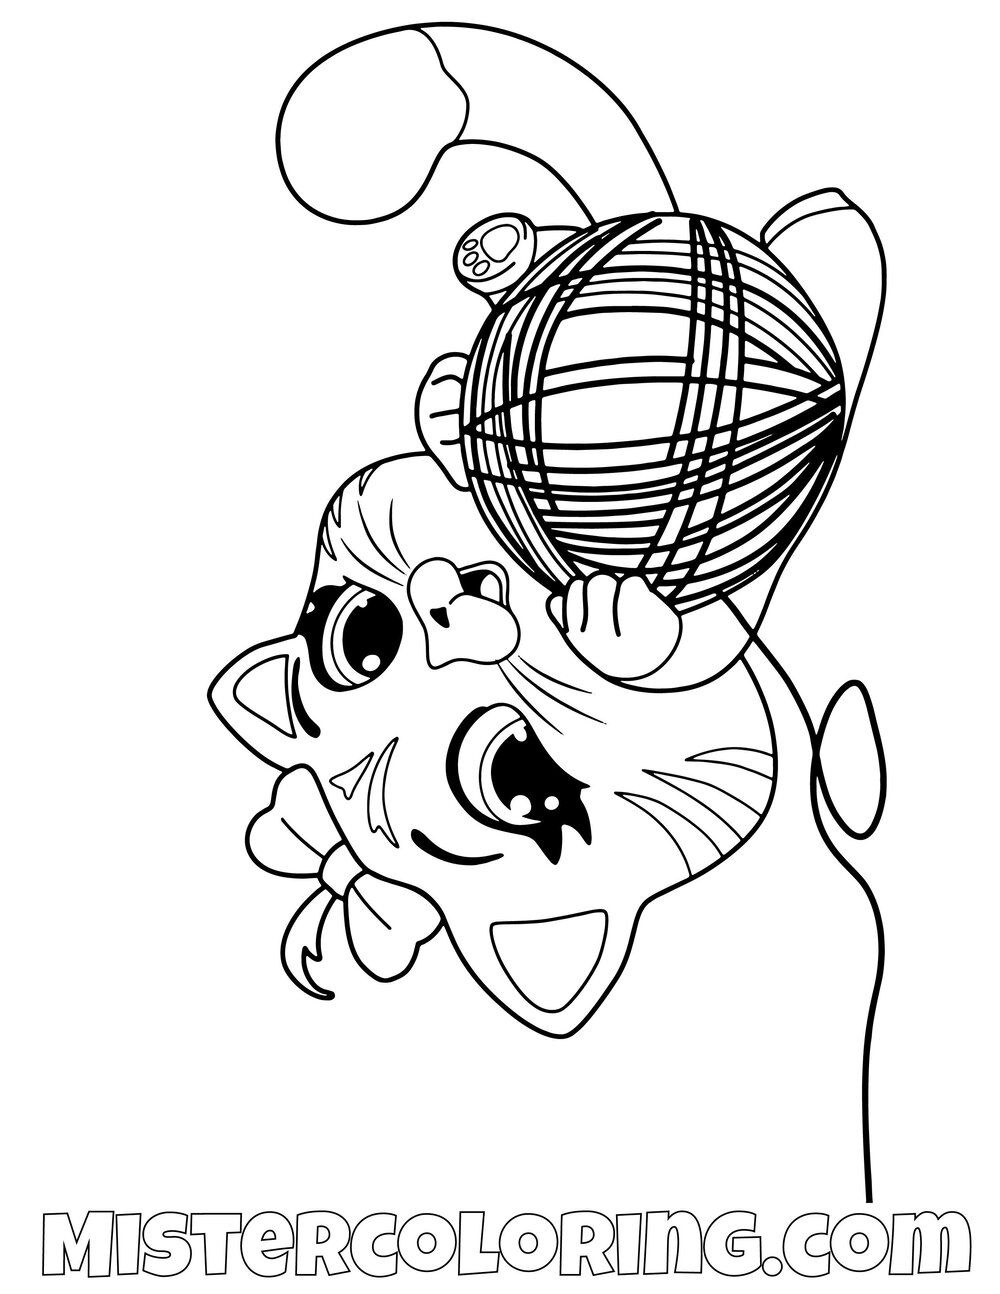 Pilou Playing With Strings 44 Cats Coloring Pages For Kids Cat Coloring Page Coloring Pages For Kids Coloring Pages